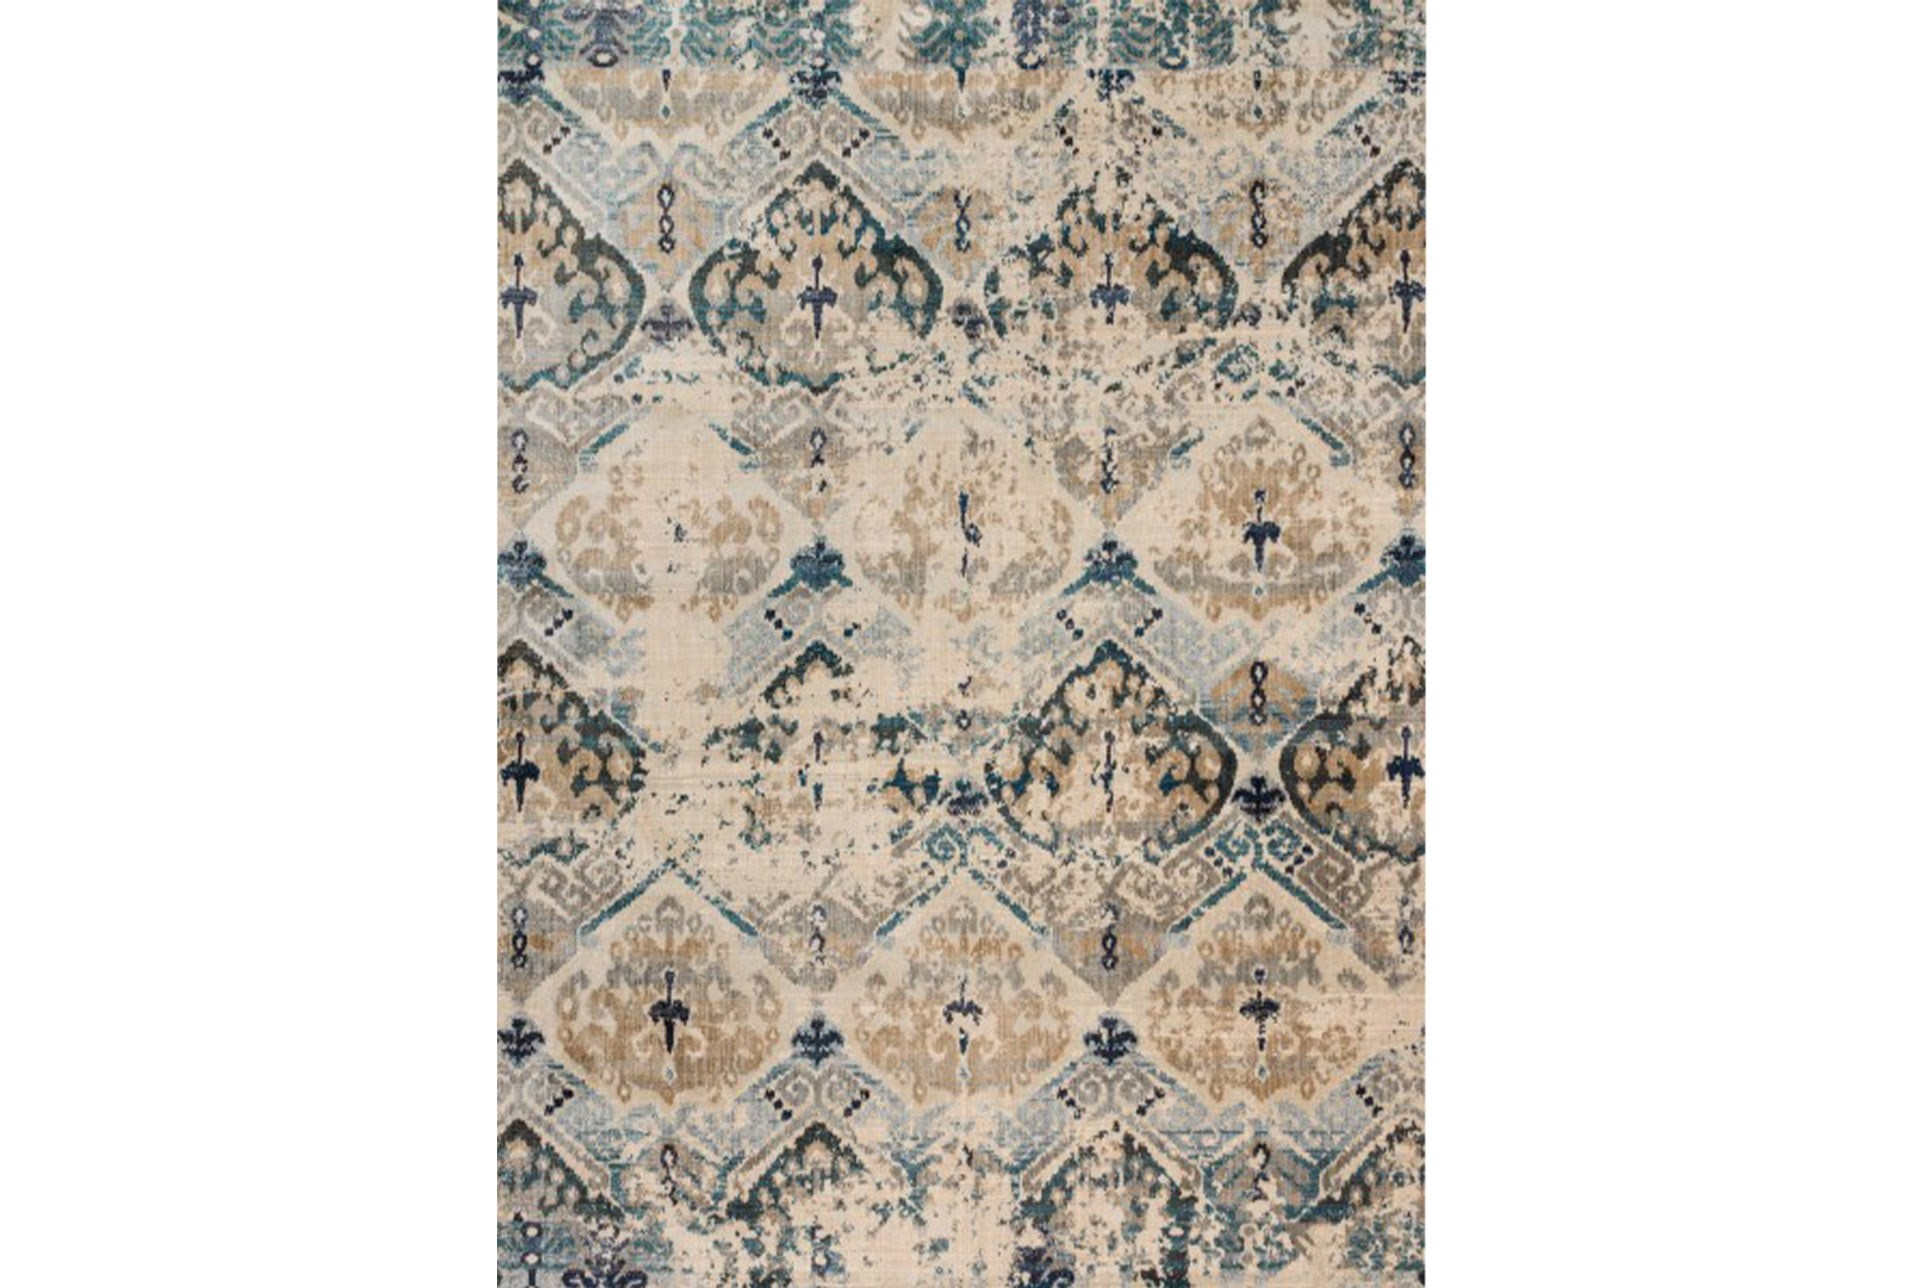 corner her home rug named gaines magnolia collection area eldest joanna drake various ideas fun rugs after fact breakfast son nook by exquisite the pin in styles